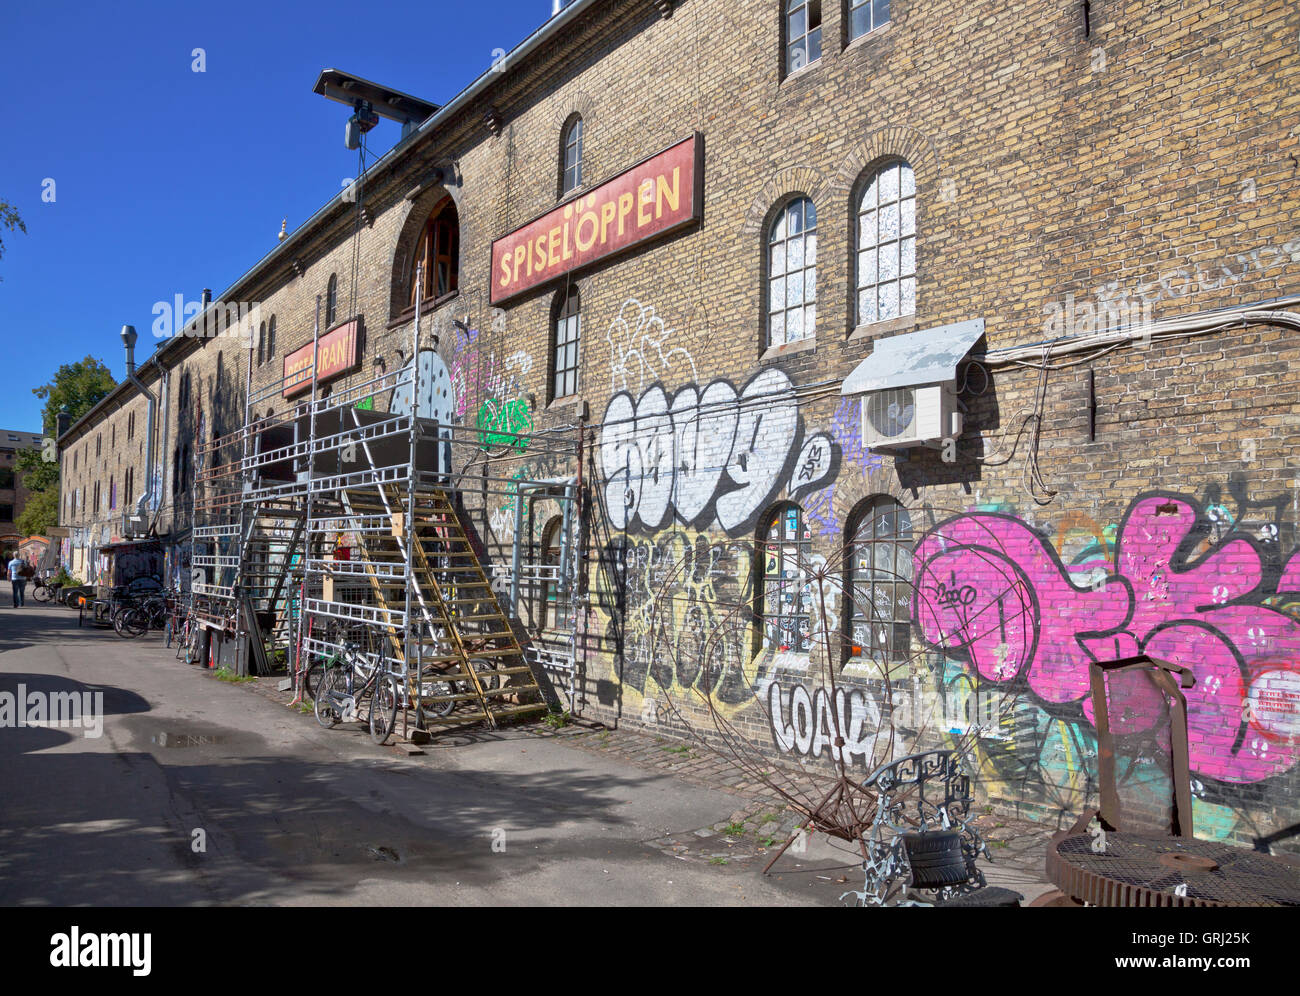 Restaurant 'Spiseloppen' in freetown Christiania, Copenhagen, the most 'real' restauant in Christiania. - Stock Image